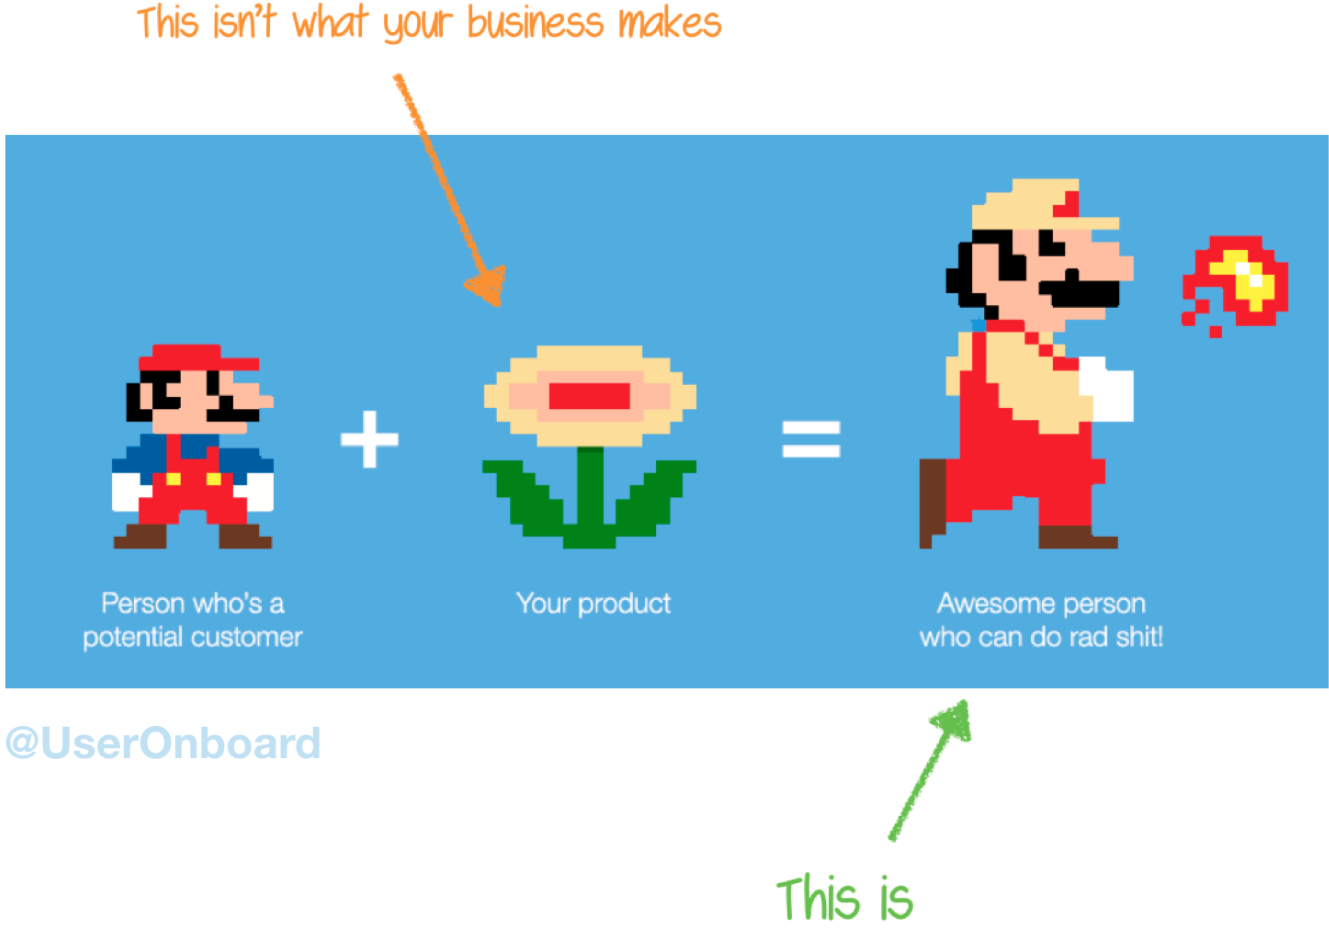 A Super Mario Bros. themed explanation of what customers want from your business. A person who is a potential customer is represented by tiny Mario, who, when combined with your product (represented by a fire flower power-up), becomes an awesome person who can do rad shit (represented by fire ball throwing Mario). Hand drawn text on the image points out that customers don't want the fire flower (your product), they want the end result, to be a fire ball throwing Mario by using your product.